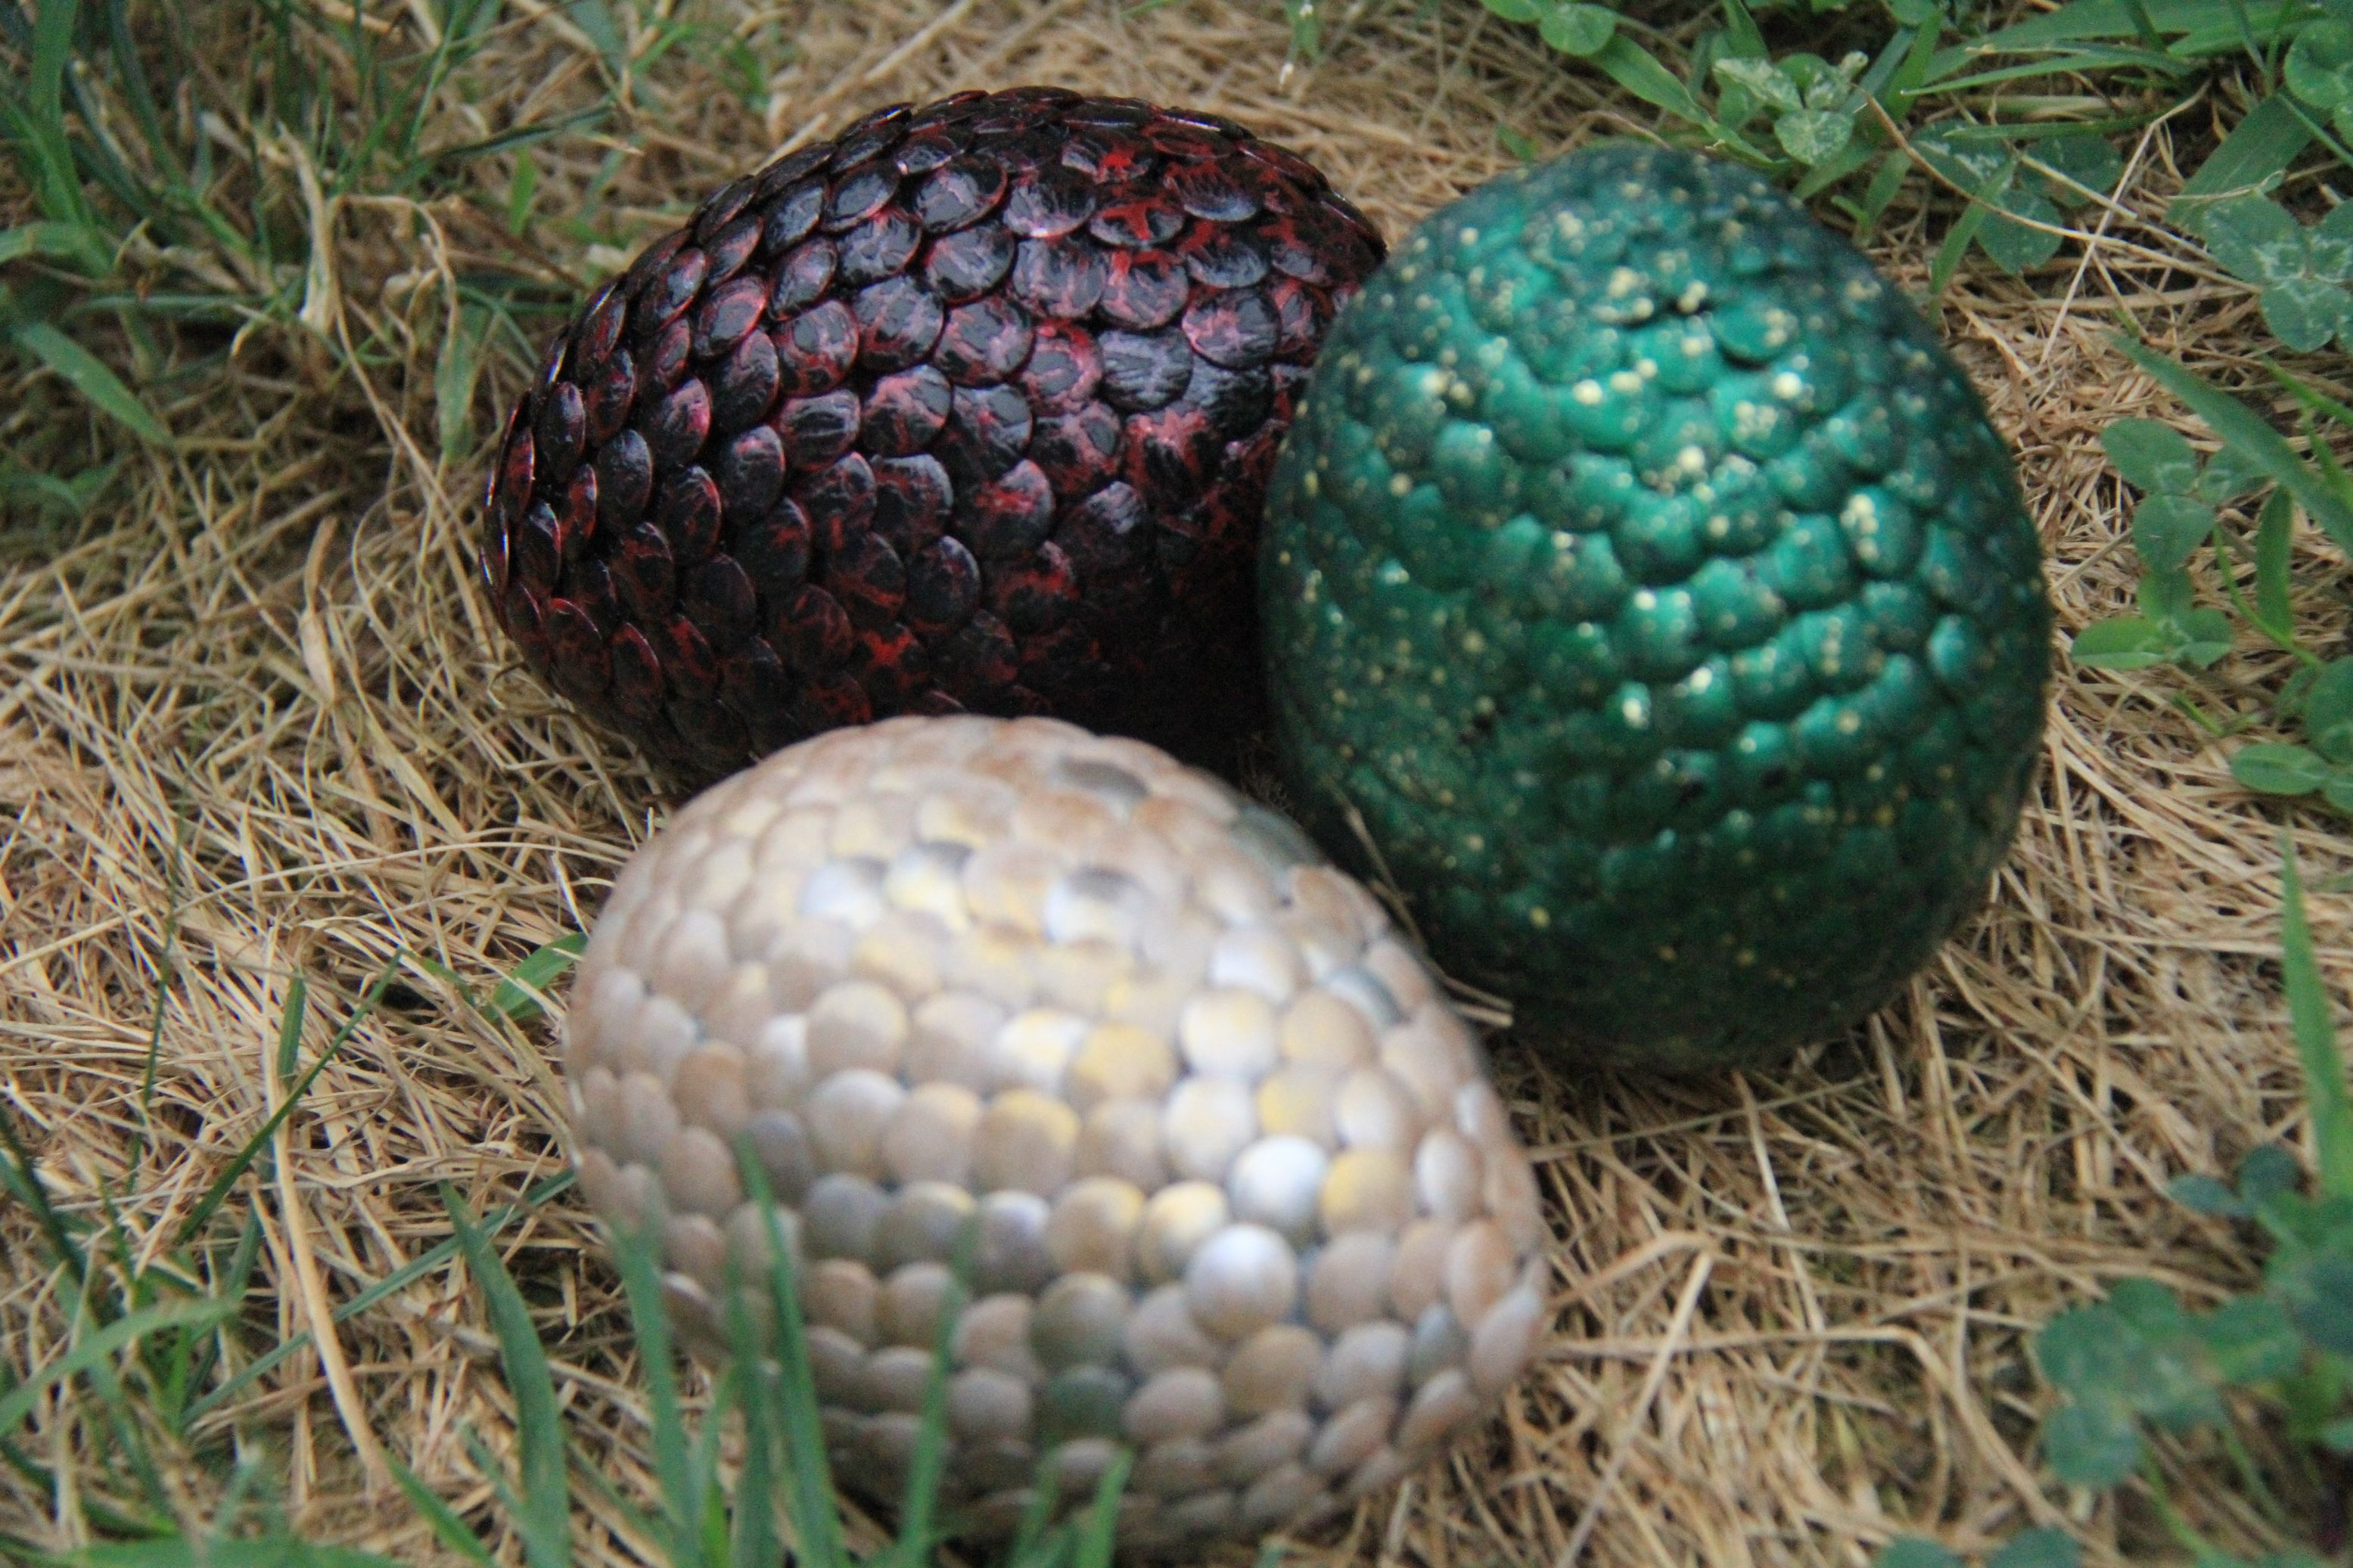 diy dragon eggs from the game of thrones they were